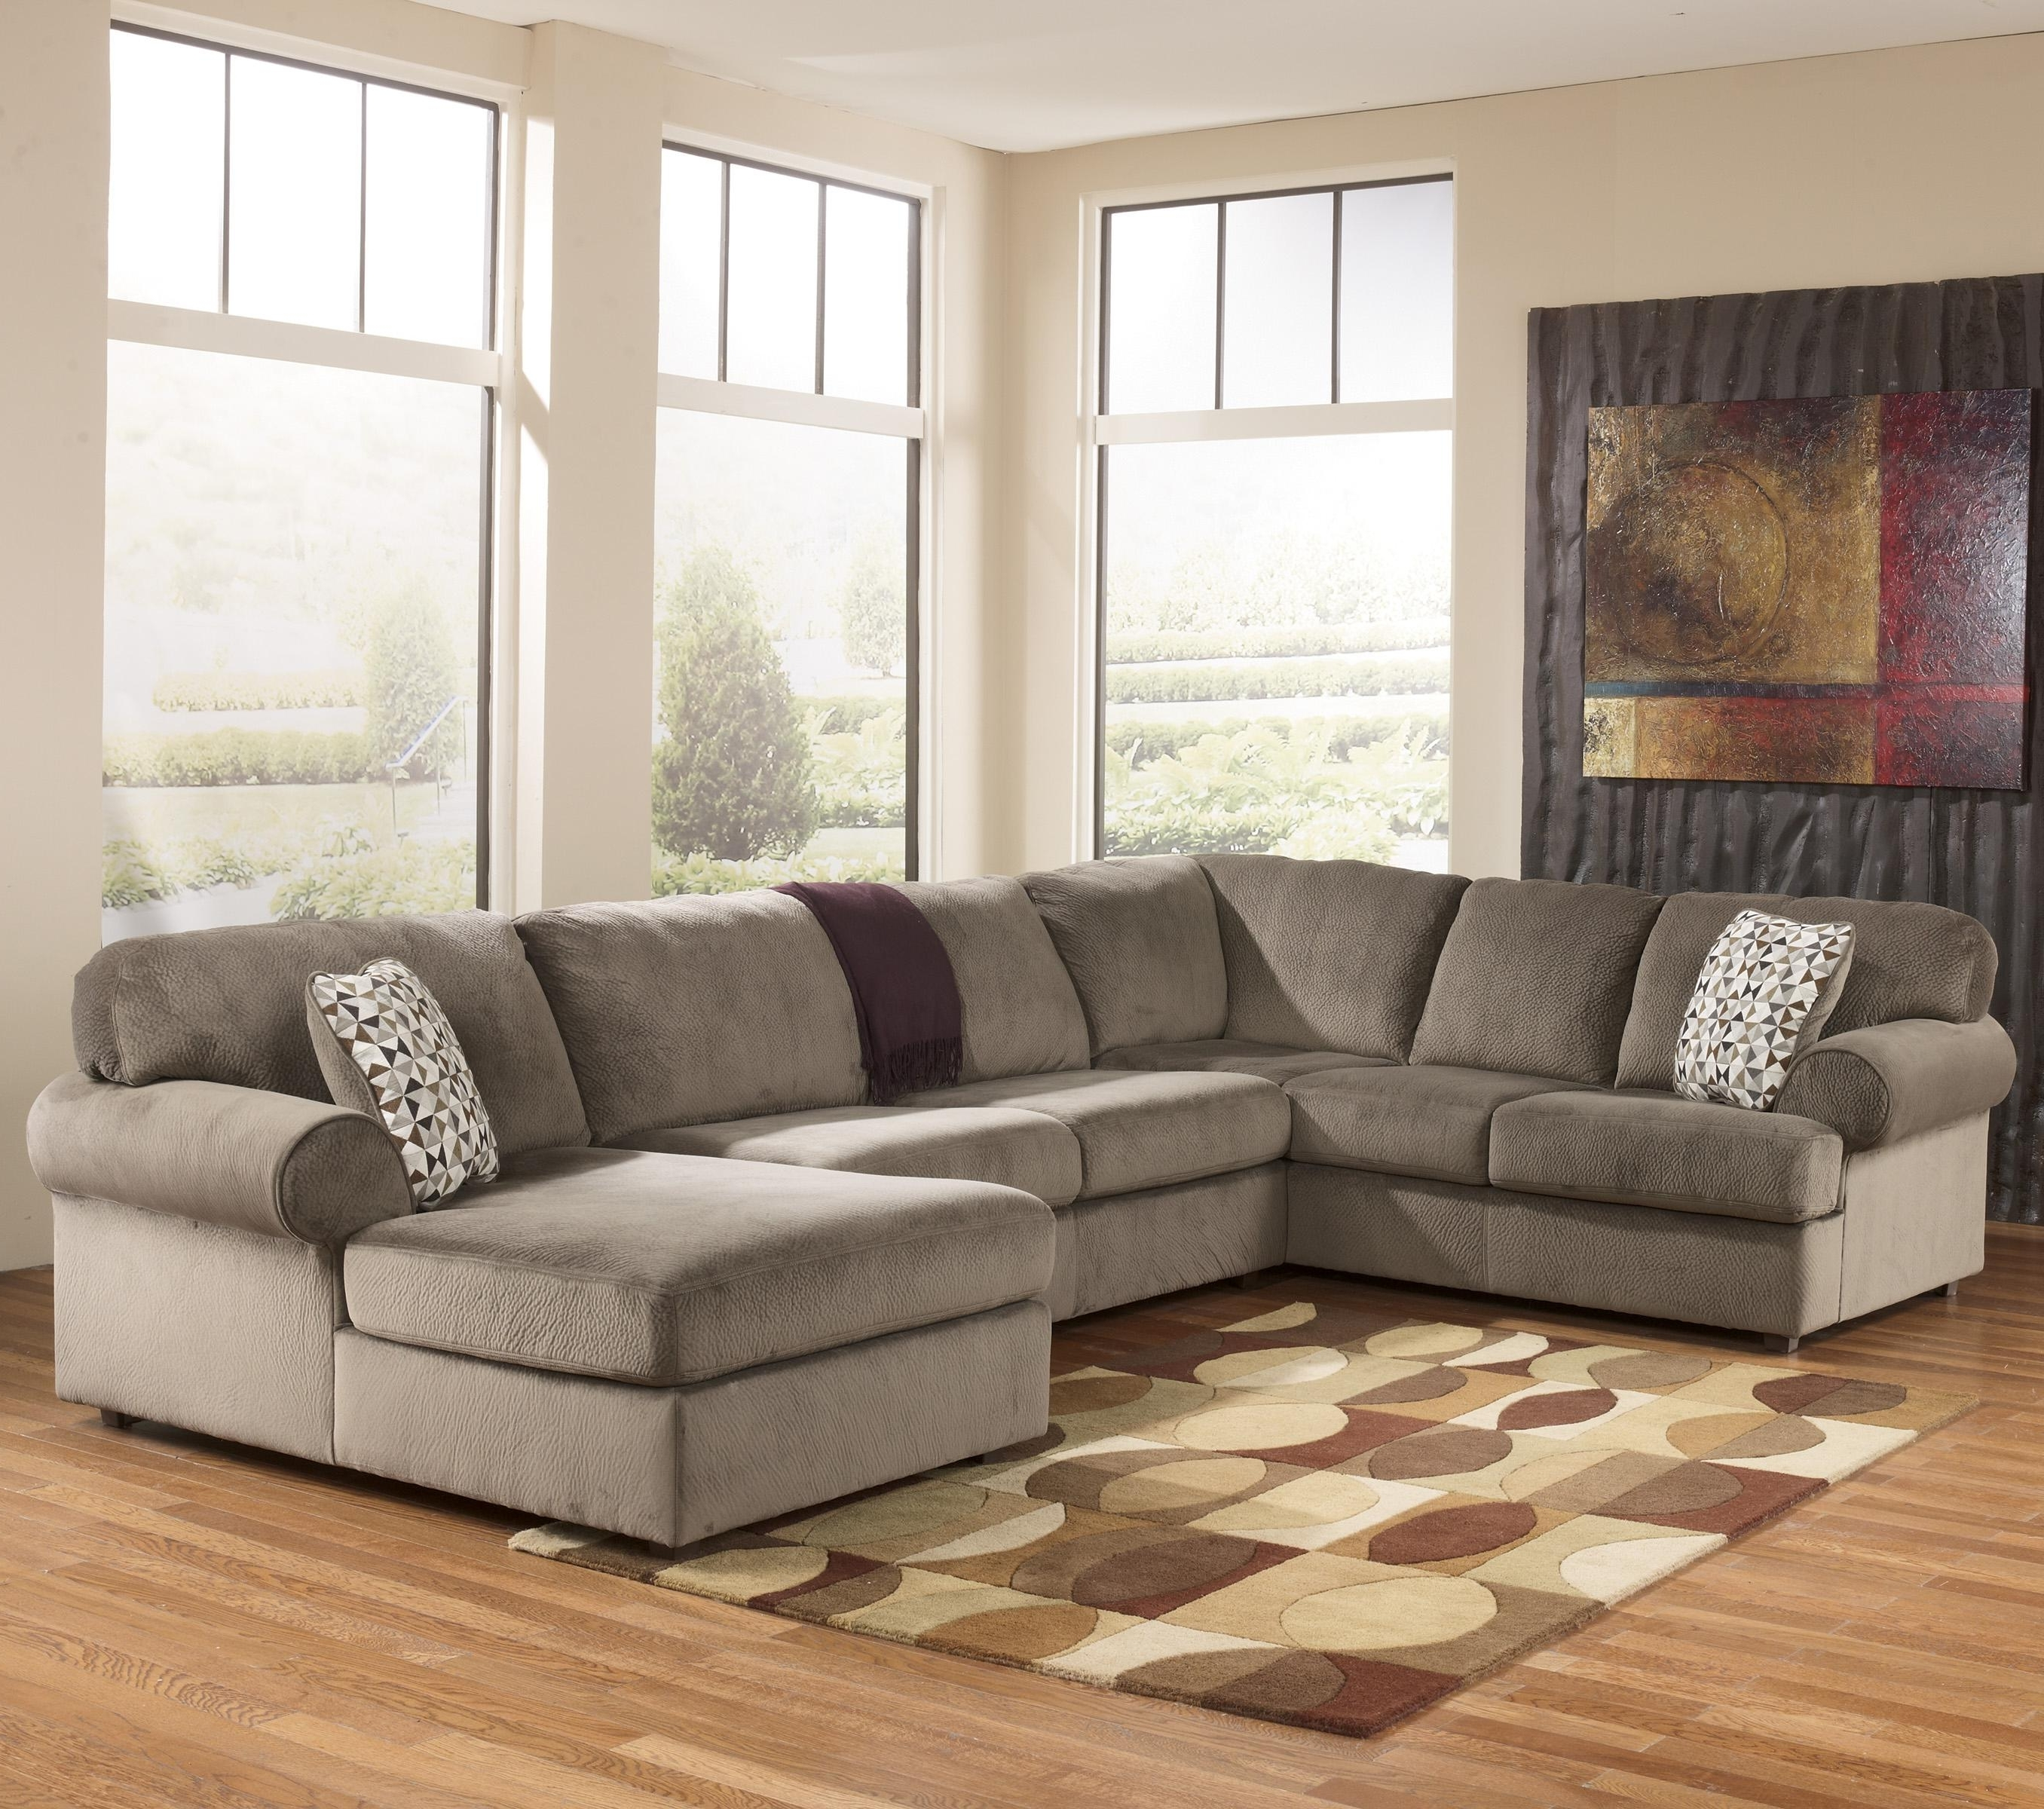 Kansas City Mo Sectional Sofas in Popular Signature Designashley Jessa Place - Dune Casual Sectional